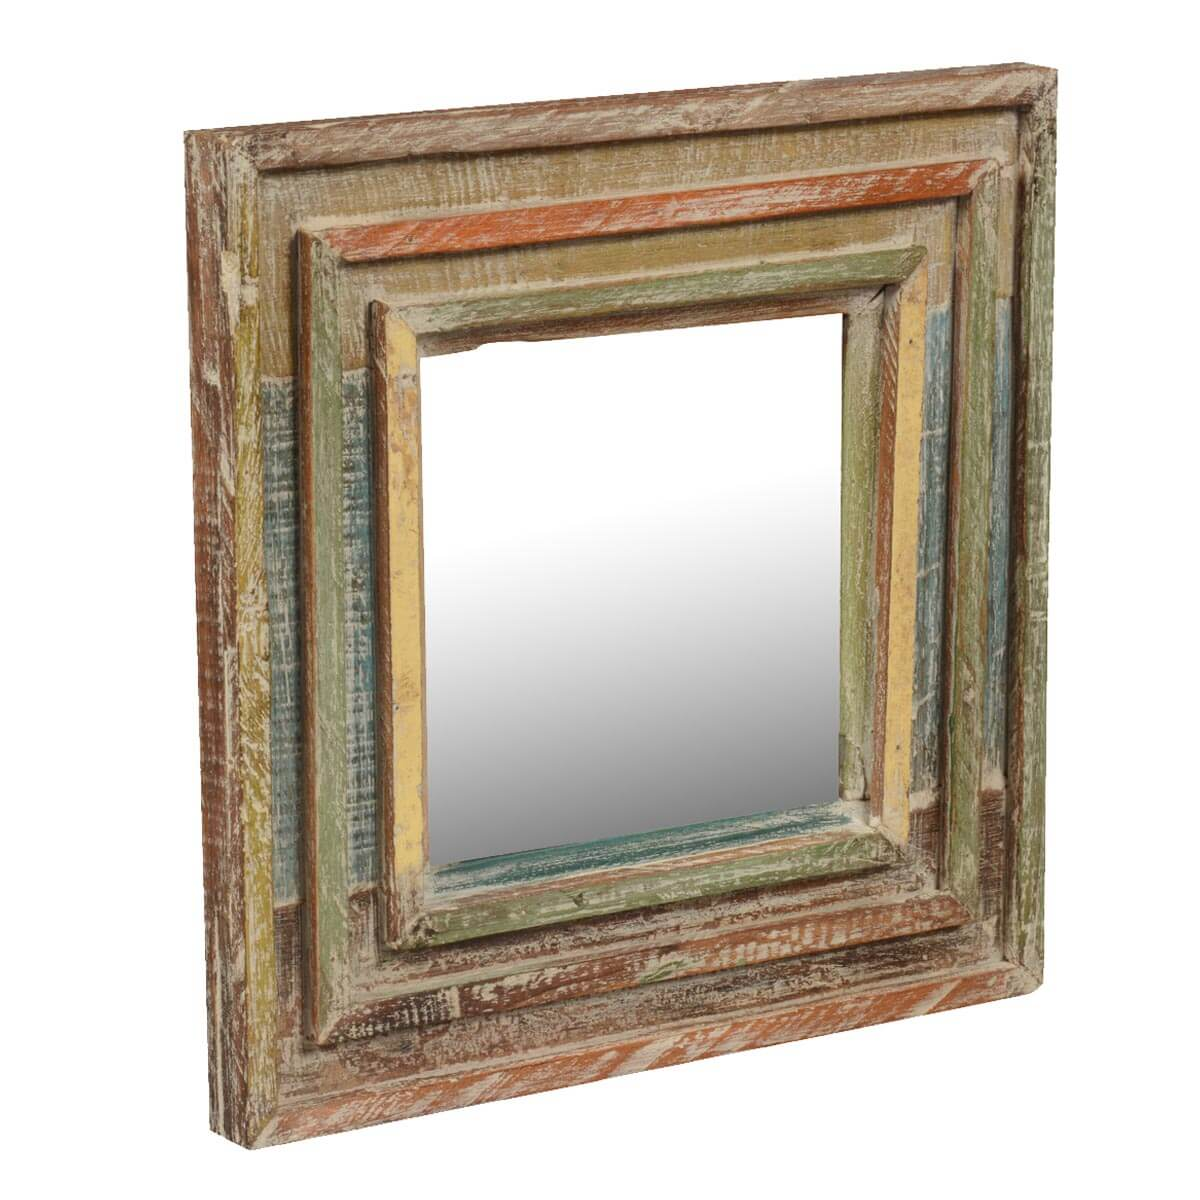 Rainbow rustic reclaimed wood 12 5 square framed wall mirror for Square mirror